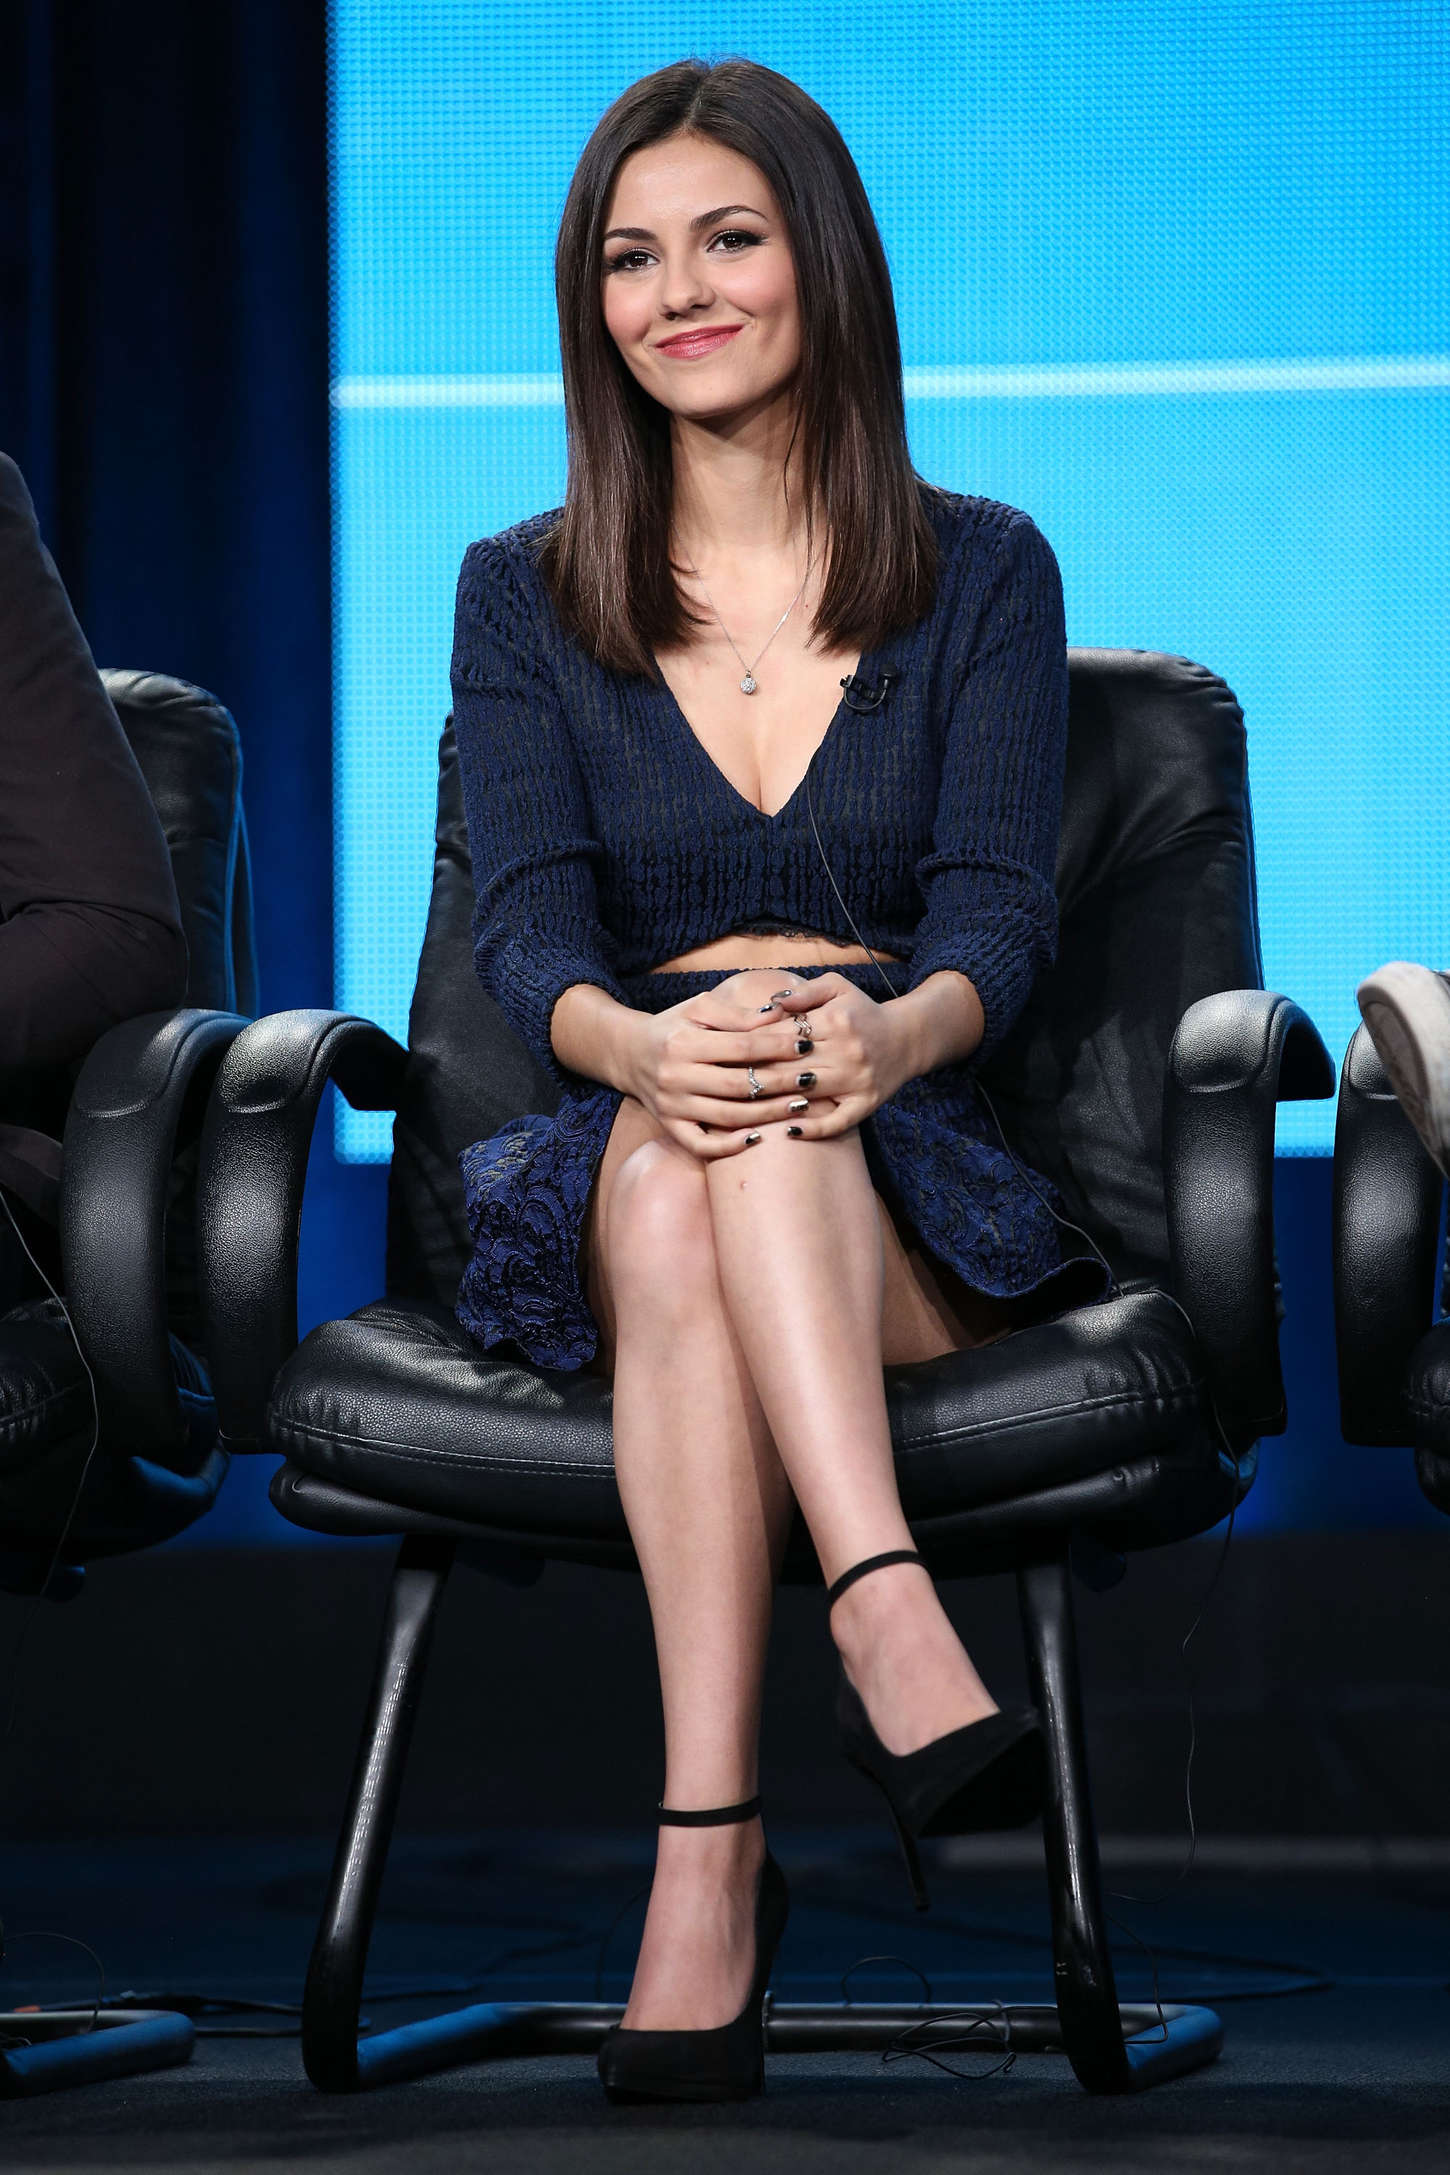 Eye Candy Nails Training: Victoria Justice: Eye Candy Panel TCA Press Tour 2015 -19